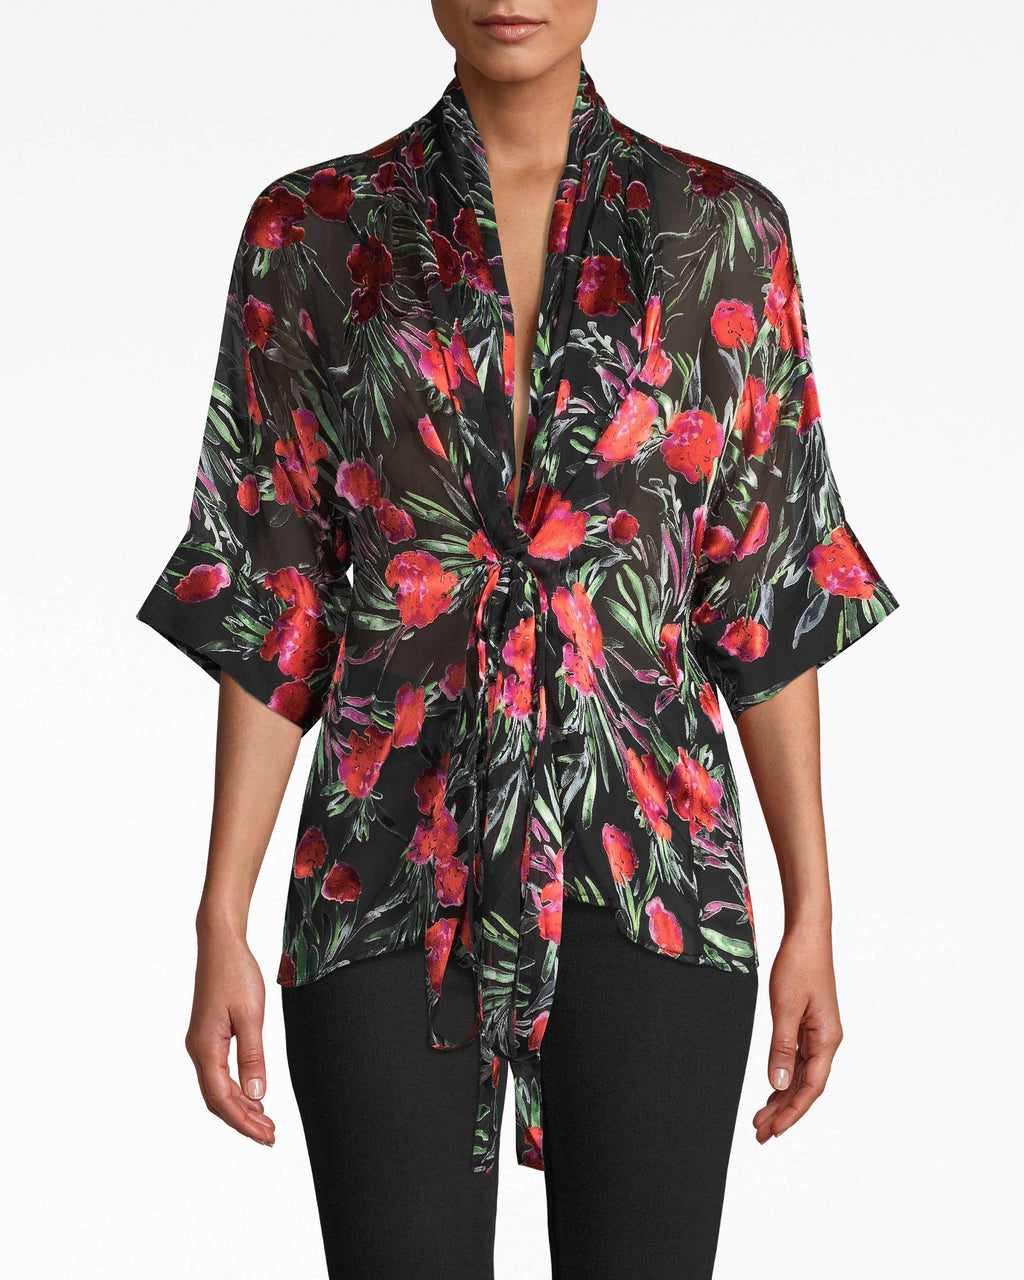 BH10506 - SPRING GARDEN KIMONO BLOUSE - tops - blouses - THIS STATEMENT MAKING TOP IS MADE FROM A LIGHTWEIGHT SILK BLEND AND FEATURES 3/4 LENGTH KIMONO SLEEVE.TIE IT MULTIPLE WAYS TO SWITCH UP YOUR LOOK. CINCH THE WAIST WITH THE MATCHING BELT. UNLINED.